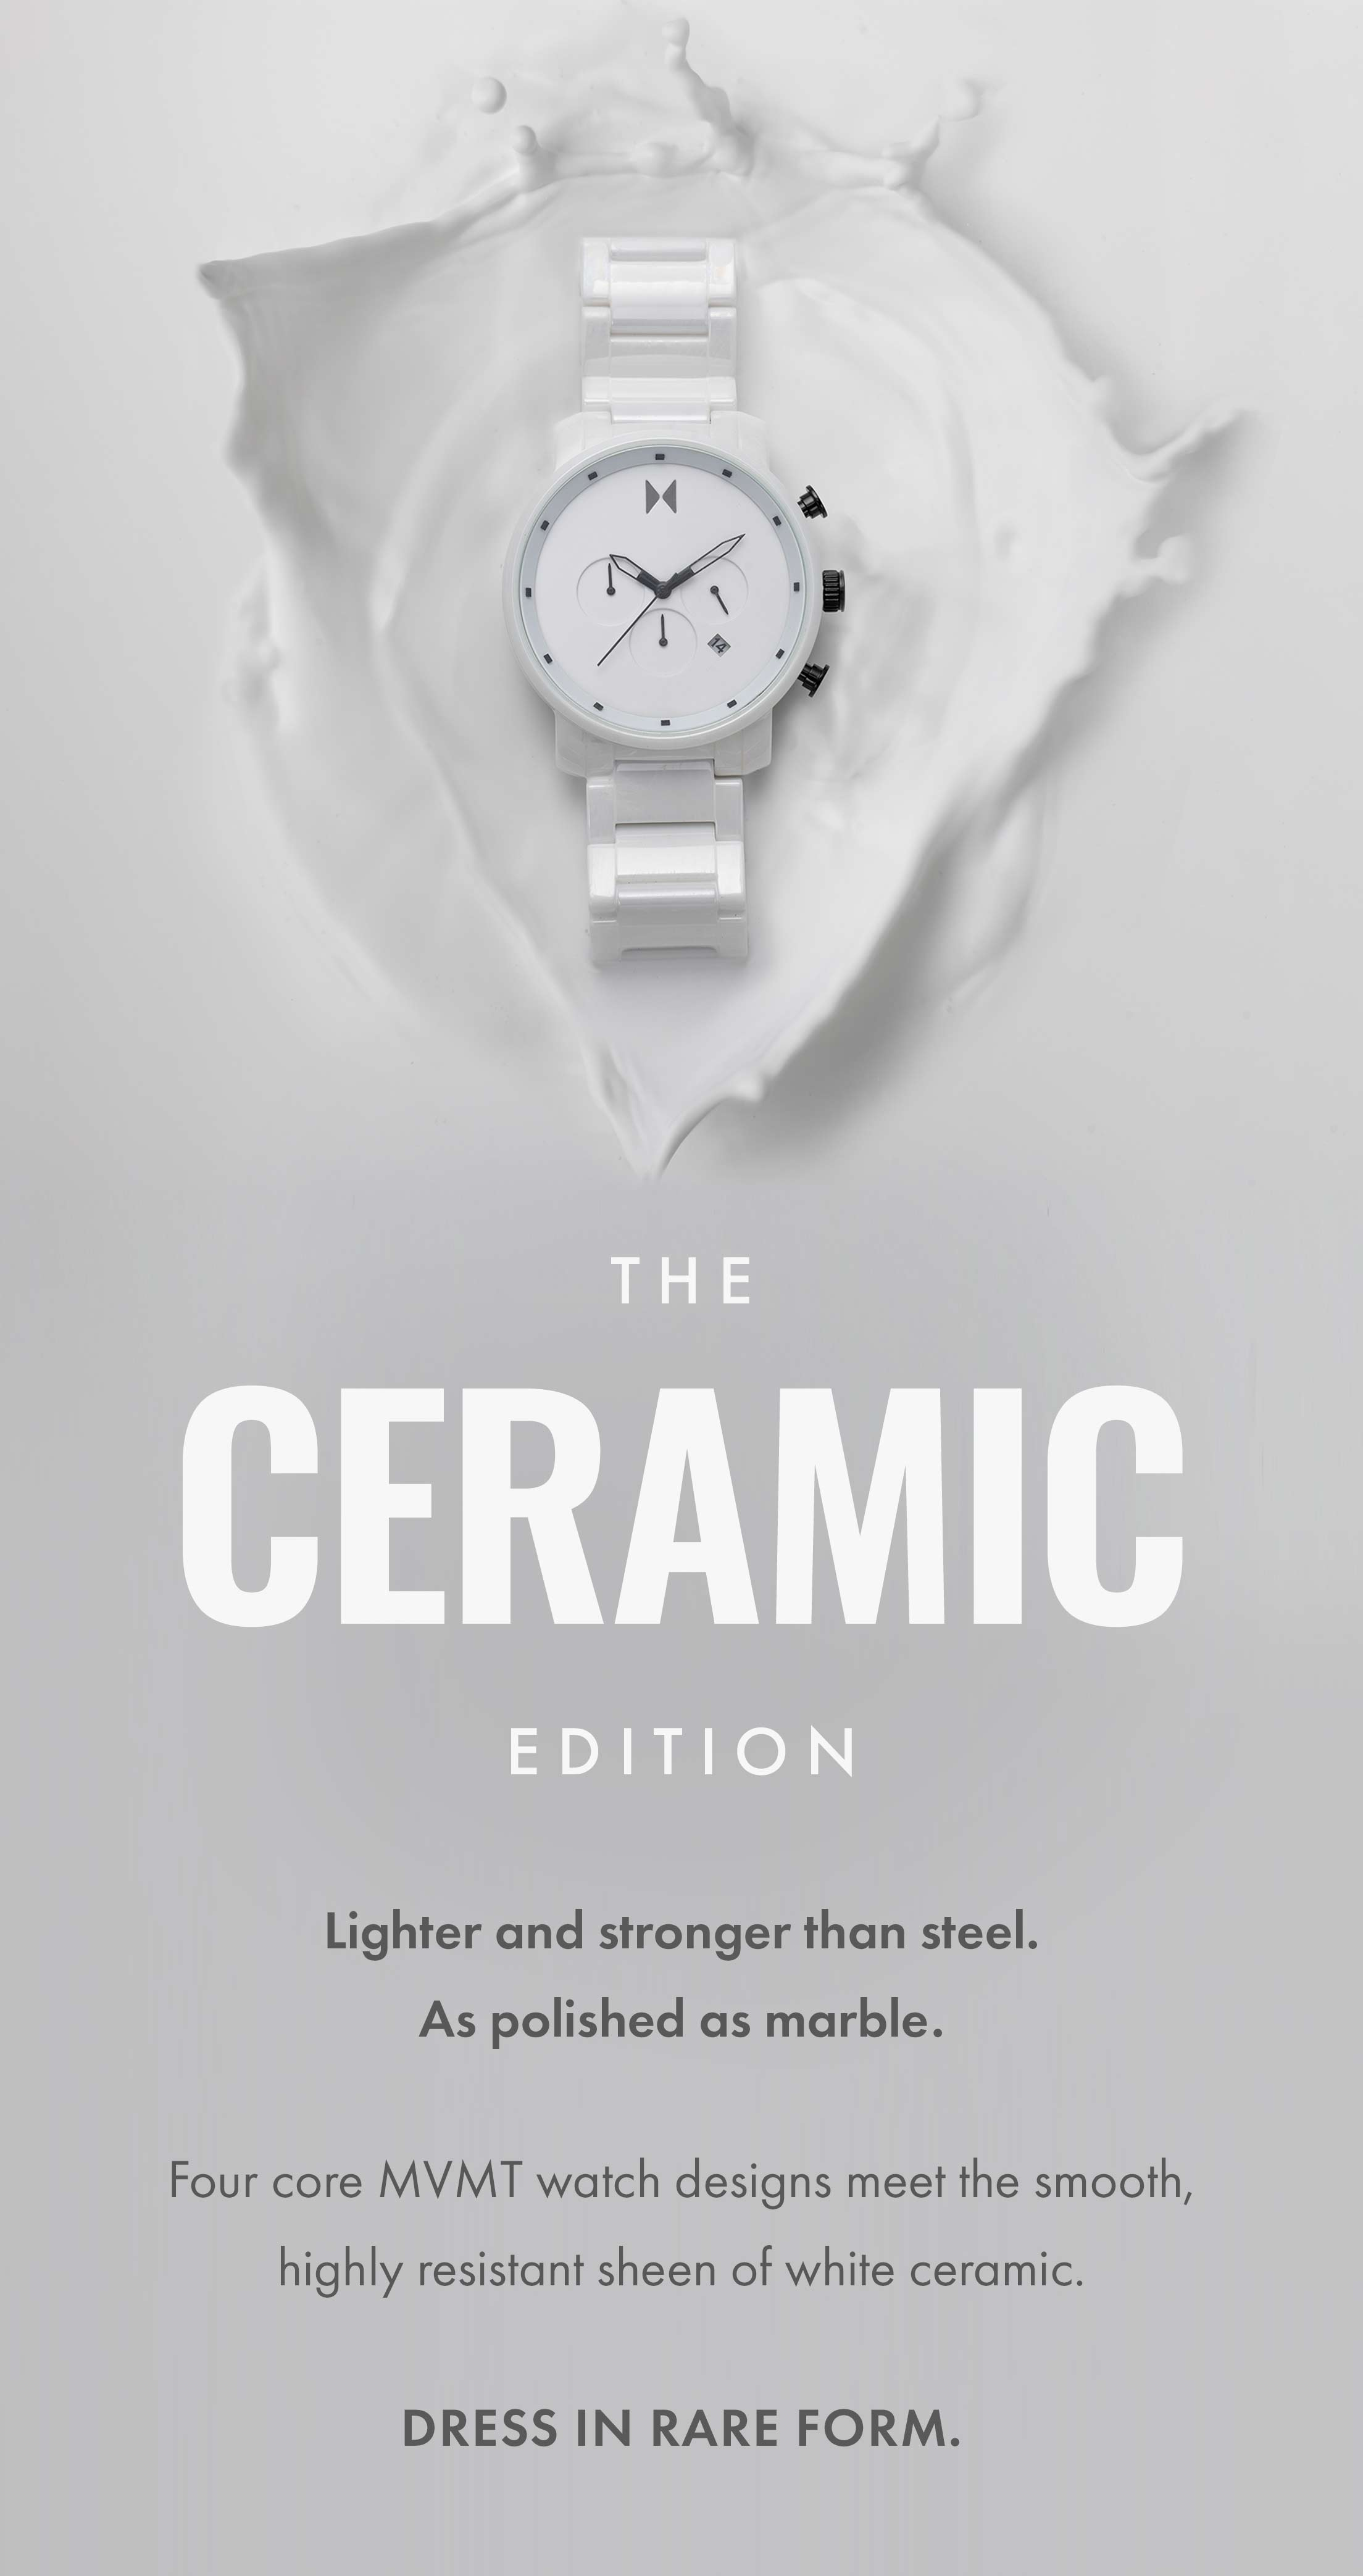 The Ceramic Edition: Lighter and strong than steel. As polished as marble. Four core MVMT watch designs meet the smooth, highly resistant sheen of white ceramic. Dress in rare form.